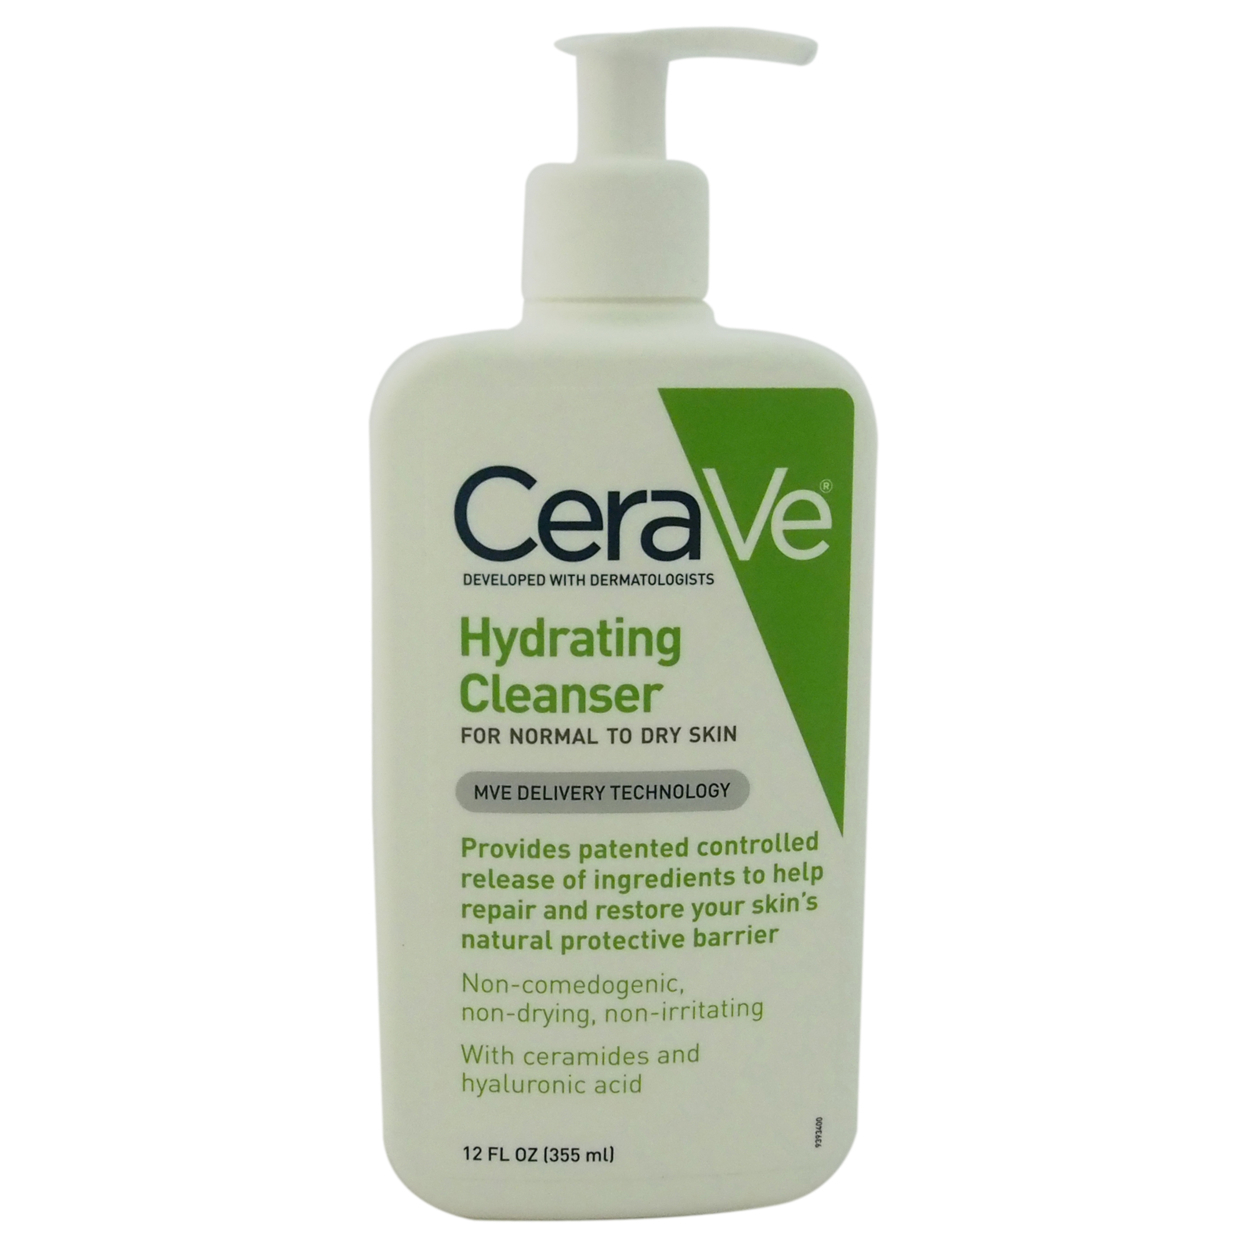 Hydrating Cleanser - Normal To Dry Skin by CeraVe for Unisex - 12 oz Cleanser 5898e195c98fc450910934a8